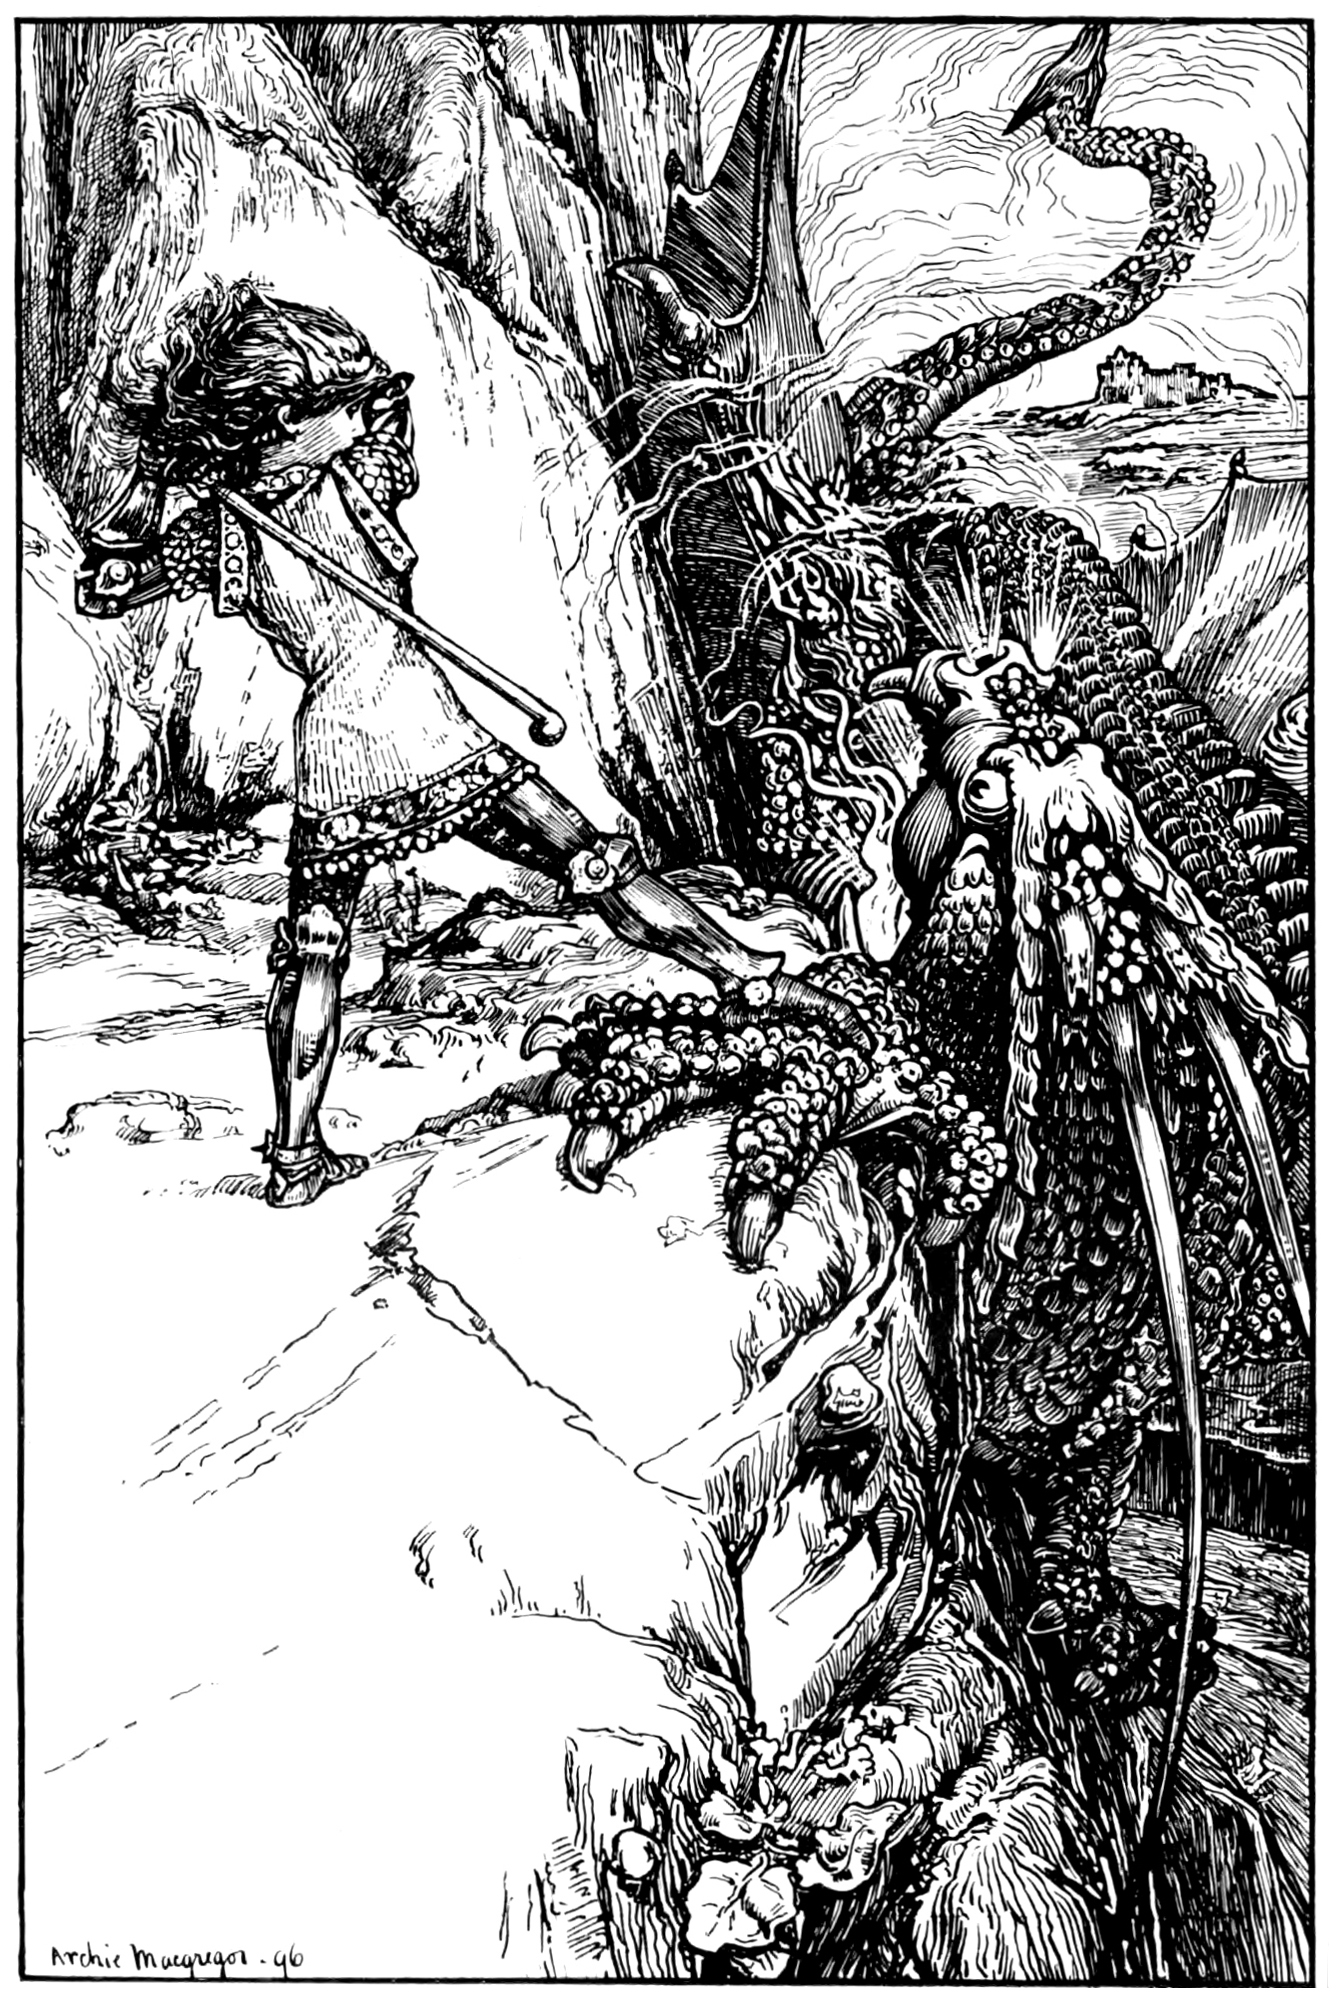 Archie MacGregor - Illustration from page 396 of Butterscotia or A Cheap Trip to Fairyland by Sir Edward Abbott Parry, 1896